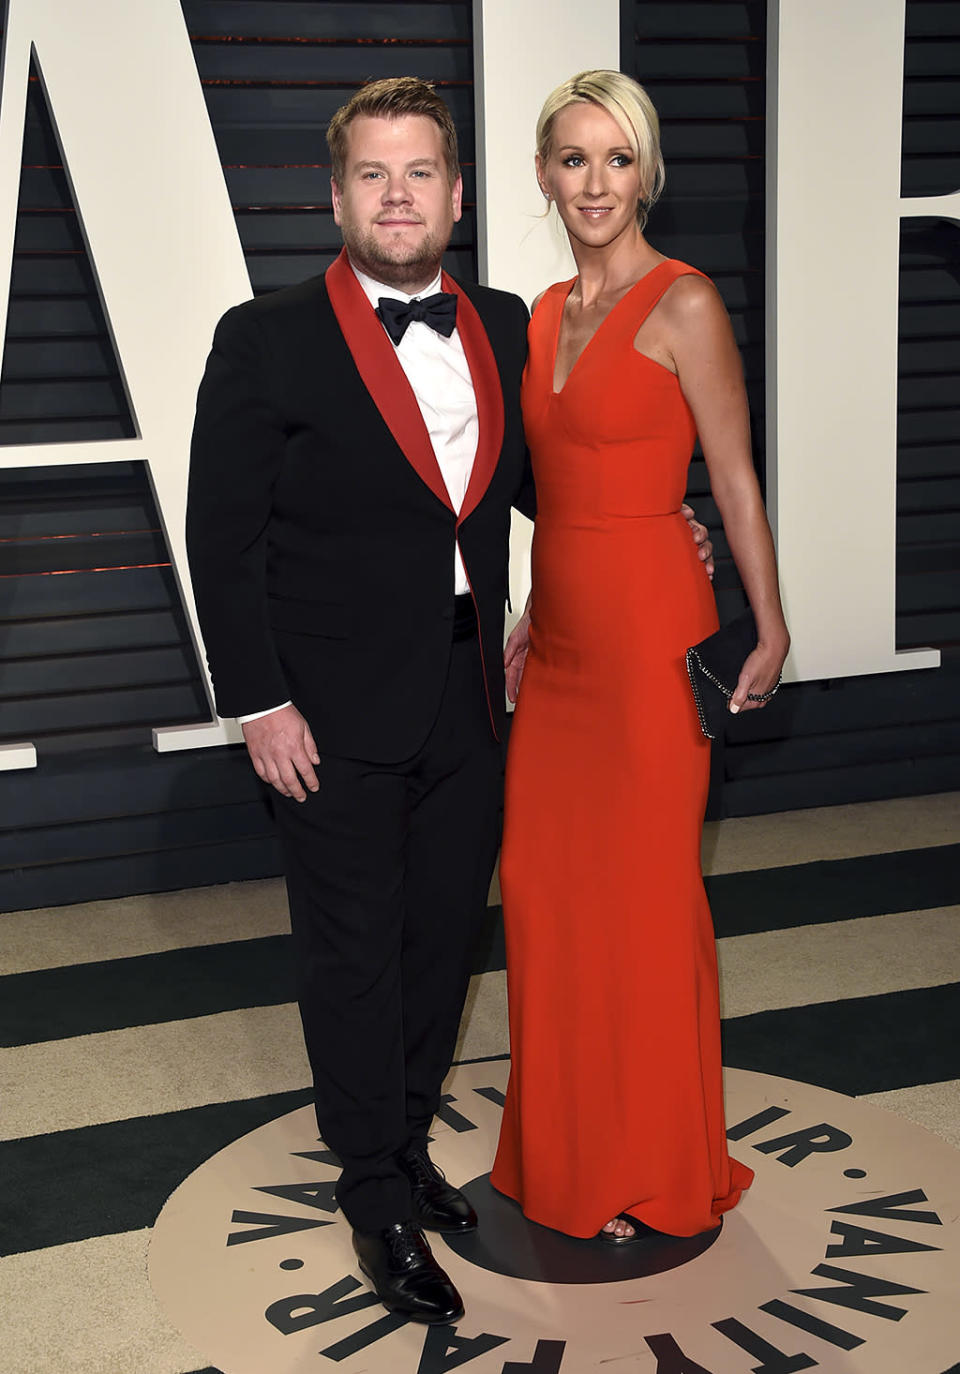 <p>James Corden, left, and Julia Carey arrive at the Vanity Fair Oscar Party on Sunday, Feb. 26, 2017, in Beverly Hills, Calif. (Photo by Evan Agostini/Invision/AP) </p>